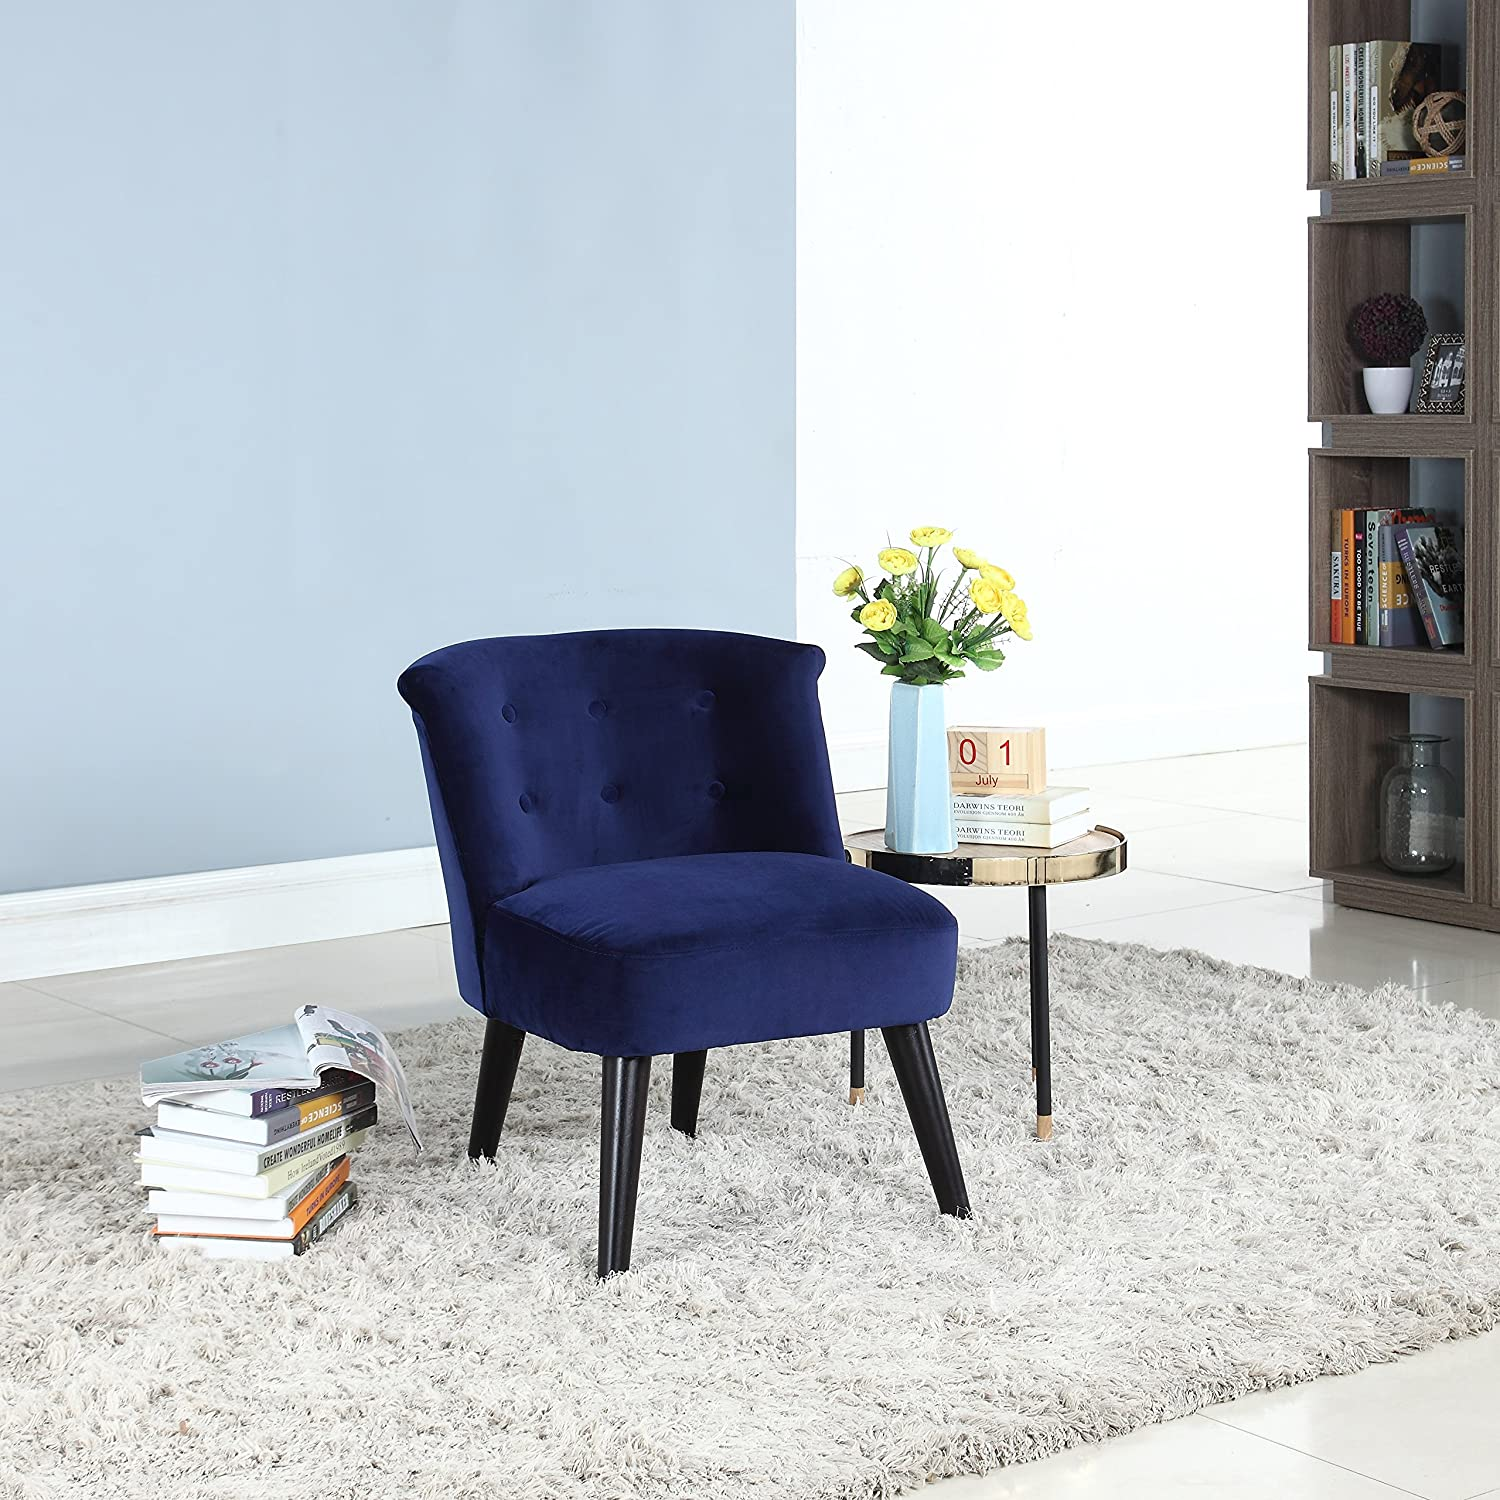 Divano Roma Furniture Classic and Traditional Living Room Velvet Fabric Accent Chair with Tufted Details (Navy)